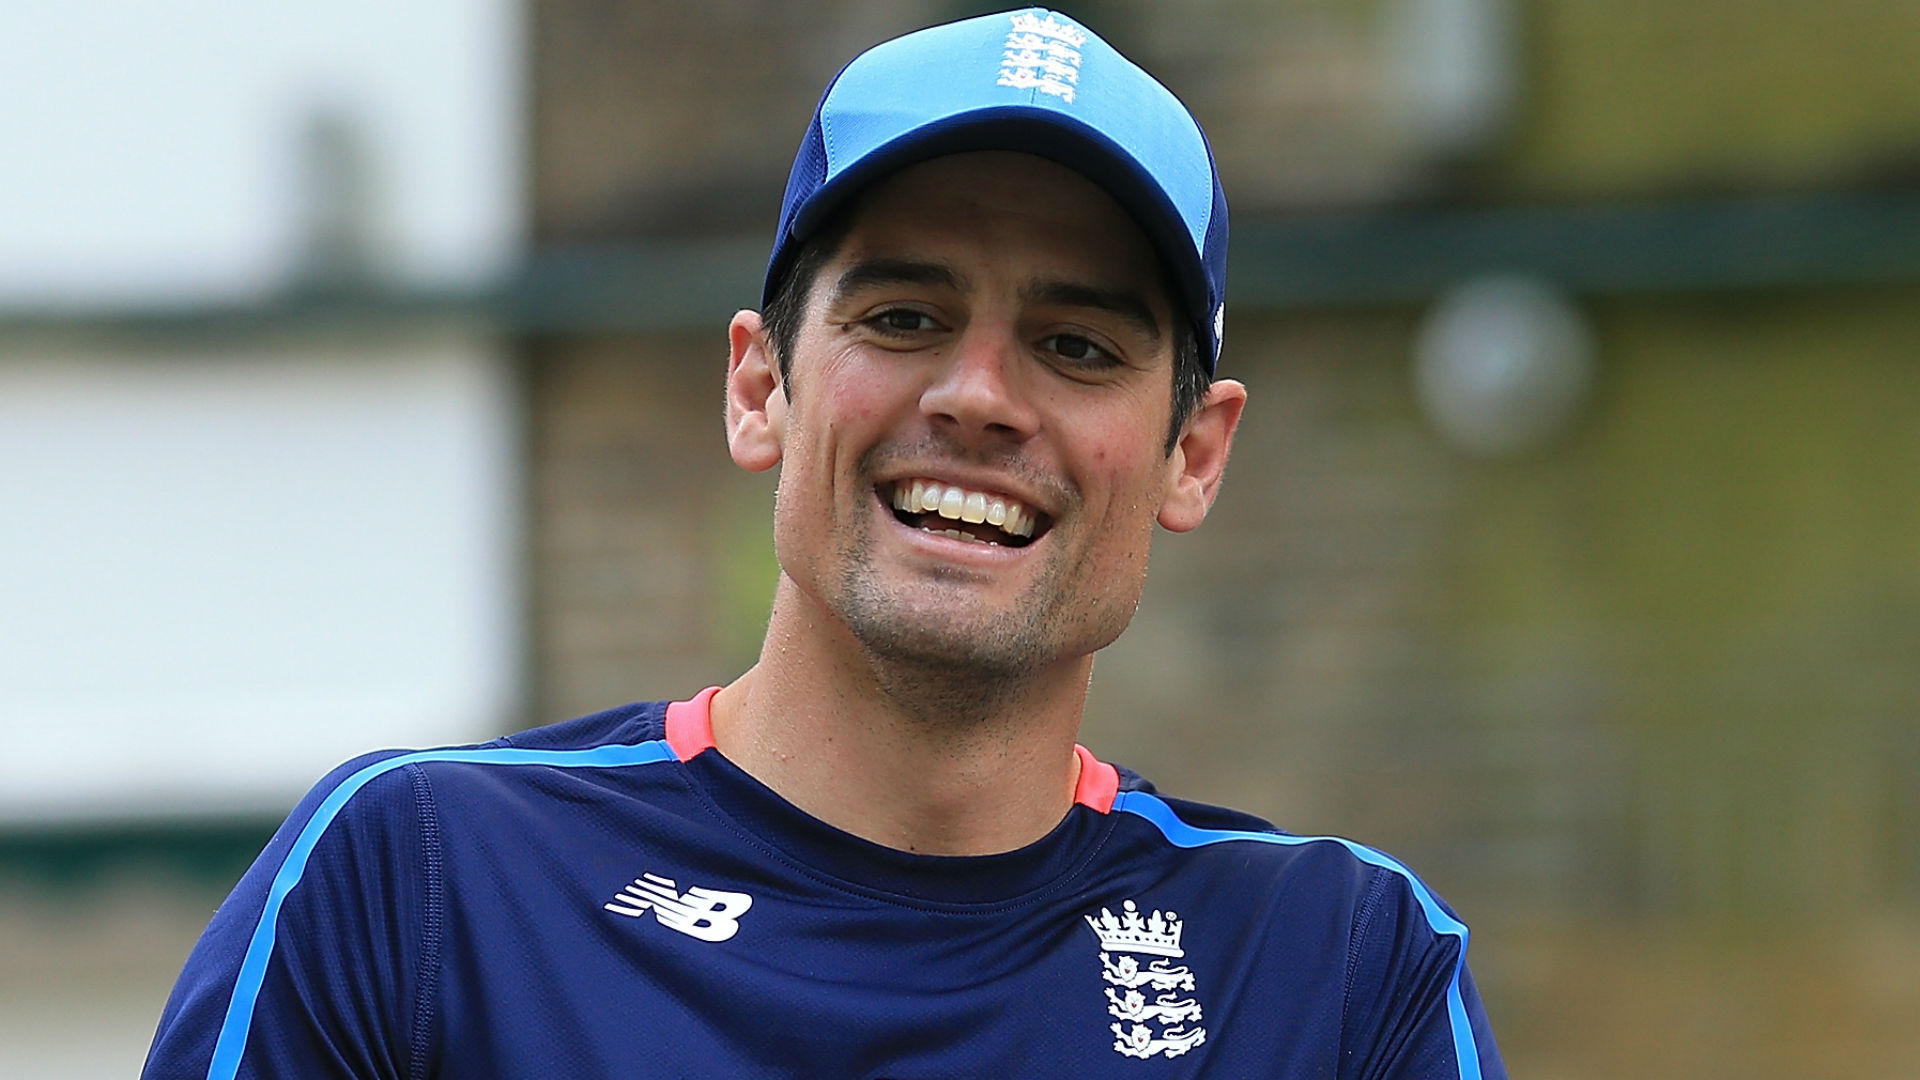 Opener Alastair Cook has played 158 Tests in a row for England and has announced he will retire after this series with India.